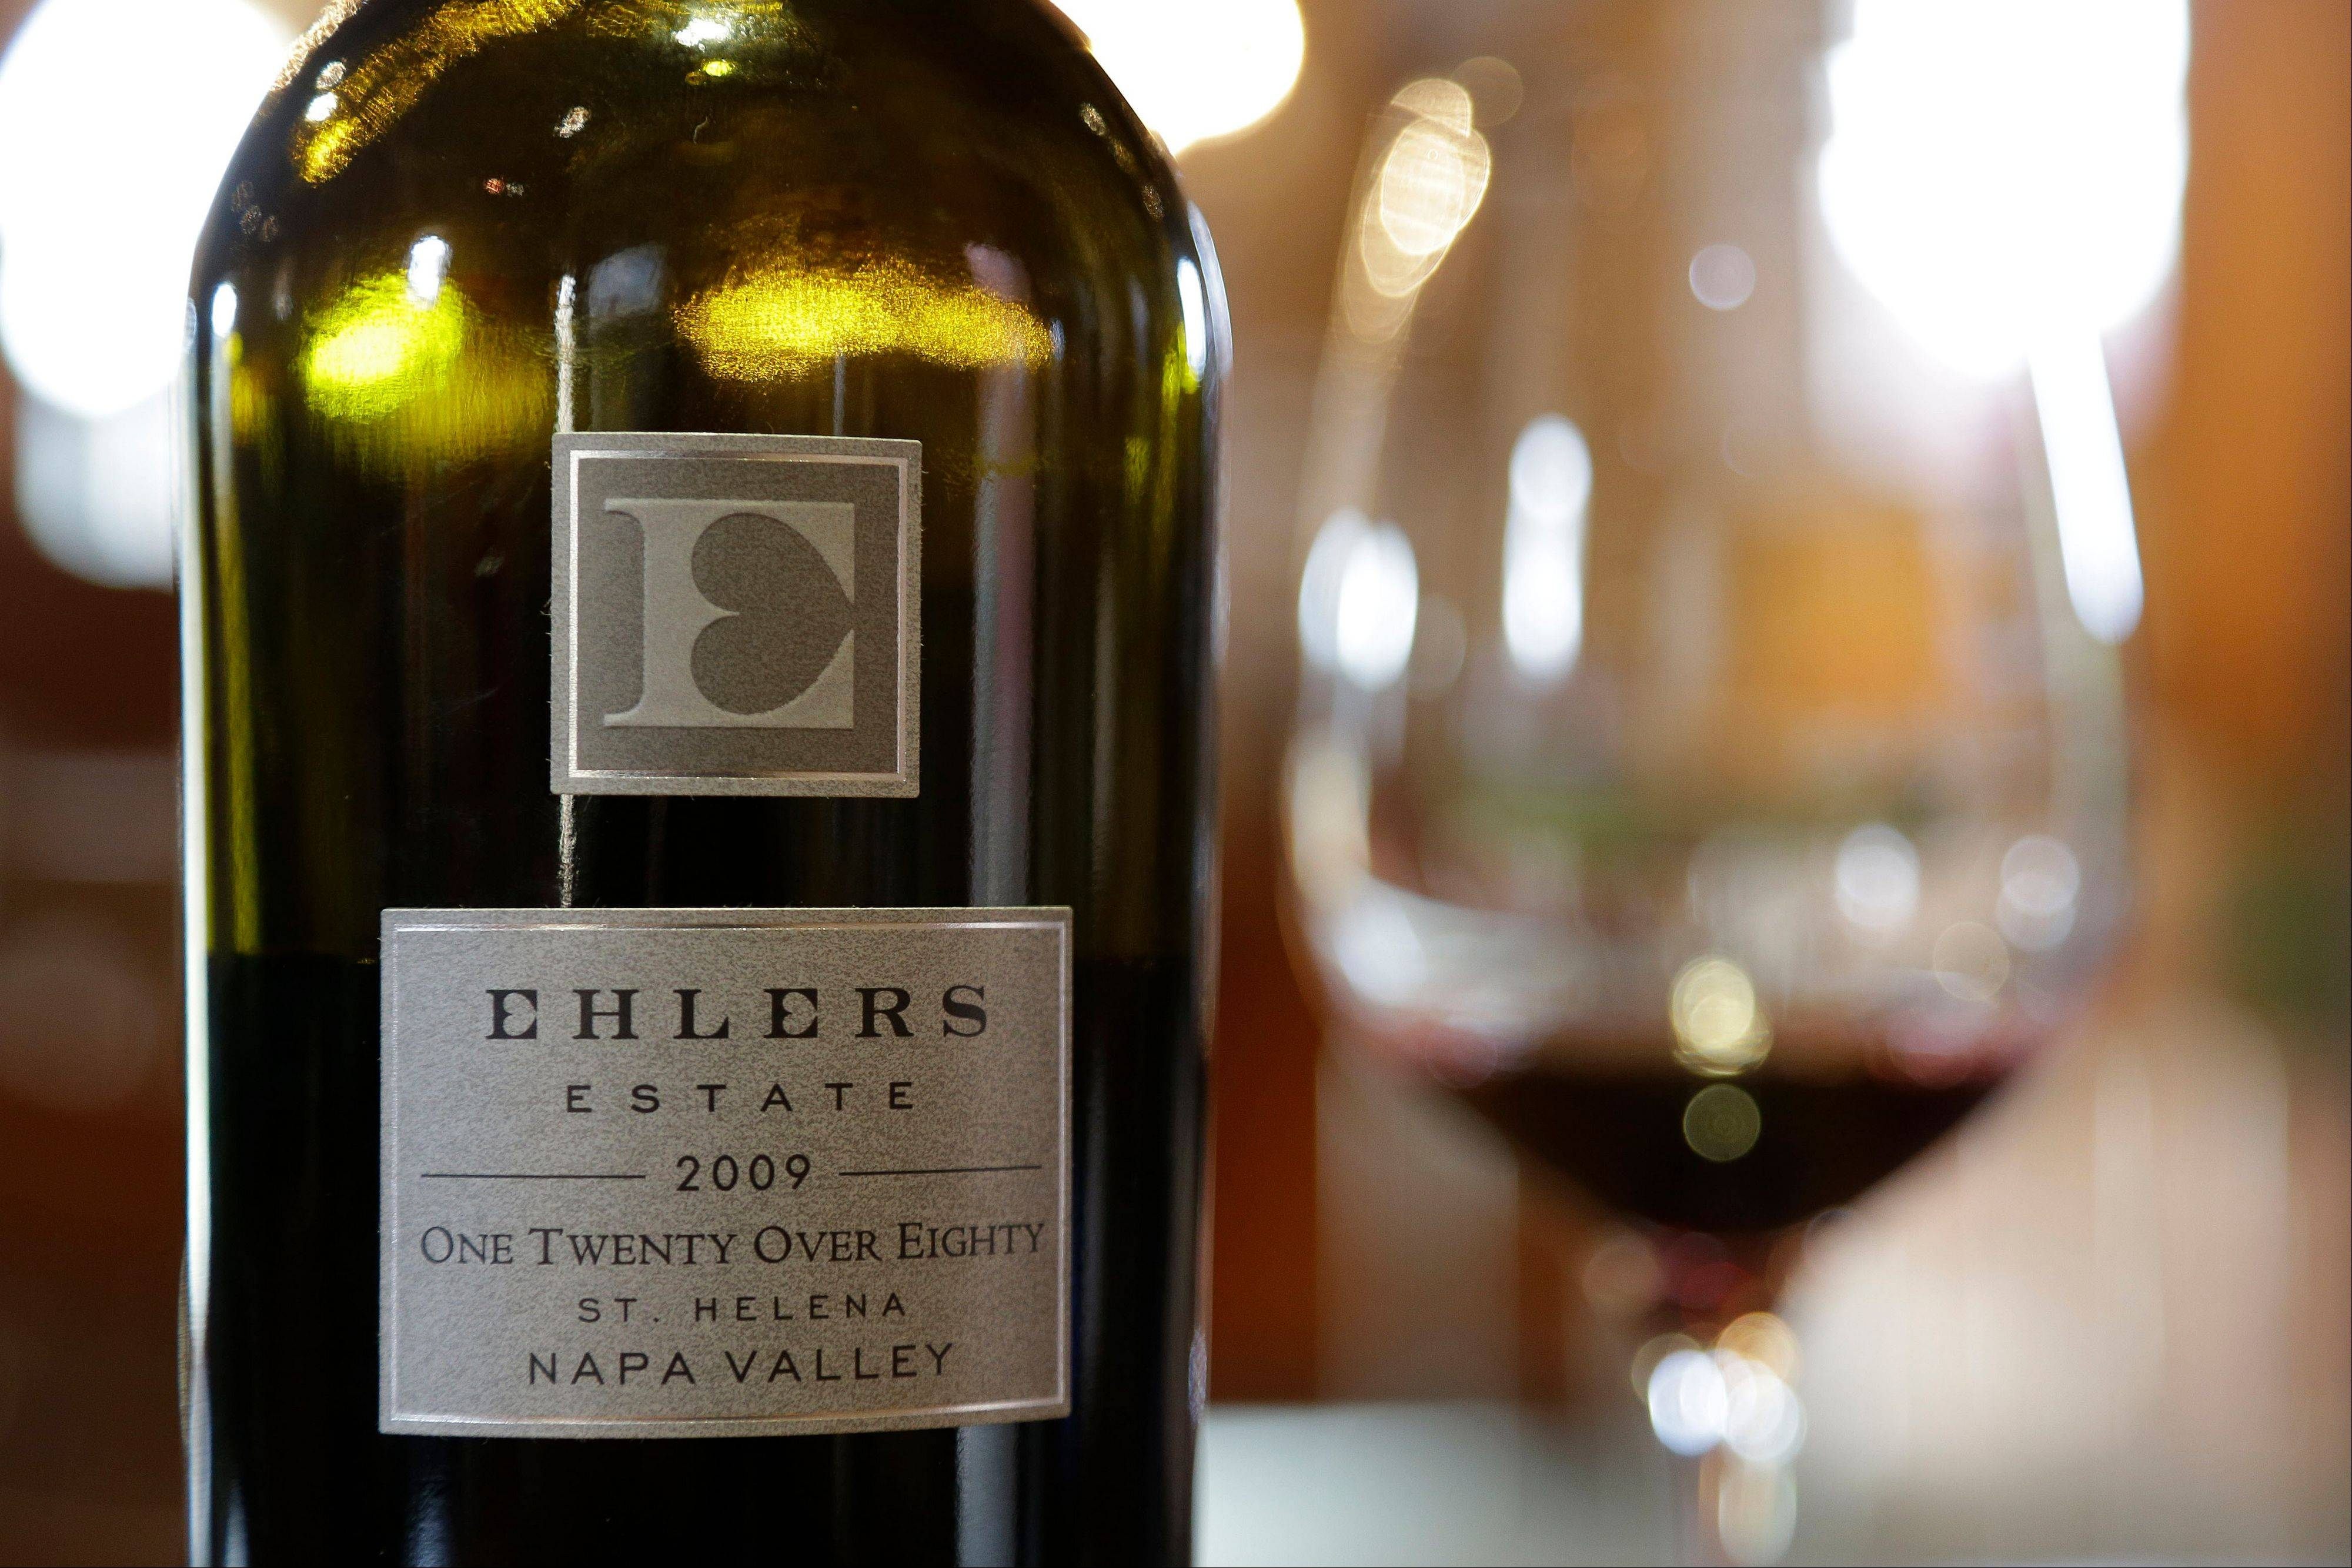 Associated PressOne Twenty Over Eighty red wine is produced by Ehler's Estate in St. Helena, Calif. Proceeds from the winery's sales go to the Leducq Foundation which continues to award more than $30 million annually to directly support international cardiovascular research.